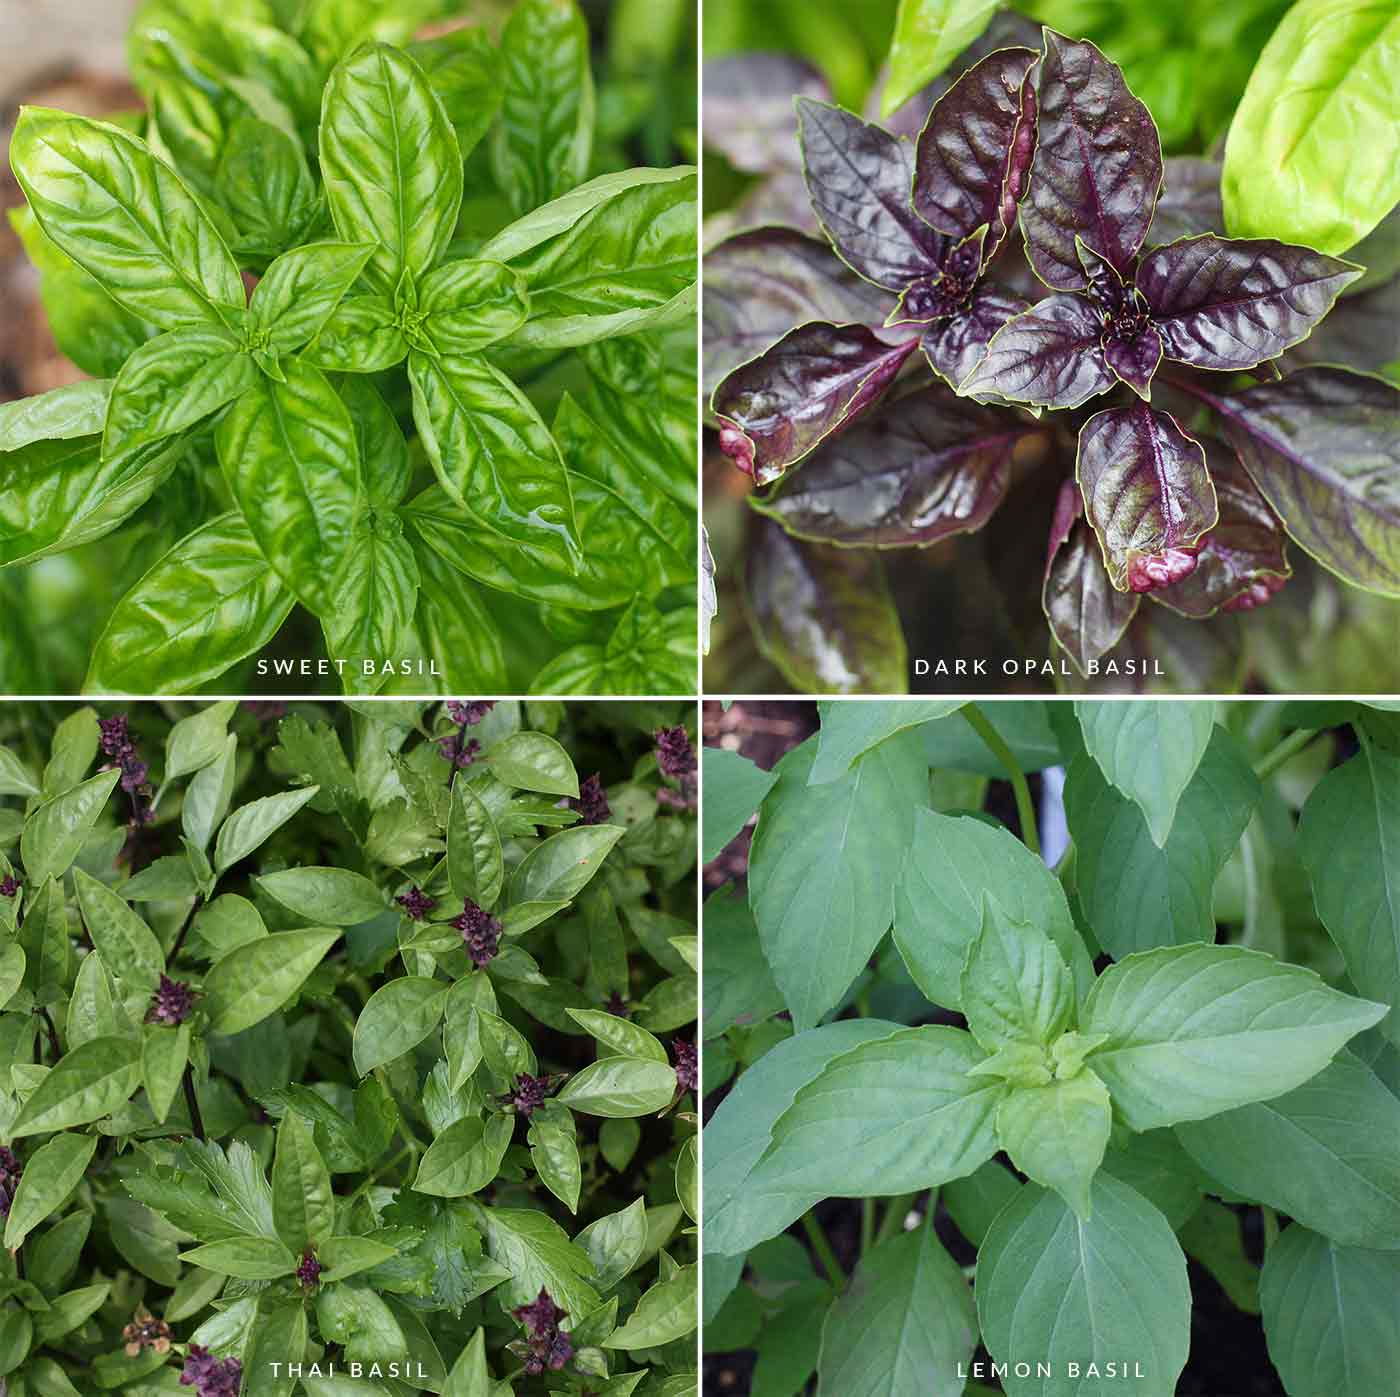 Four types of basil plants, sweet, dark opal, thai, and lemon